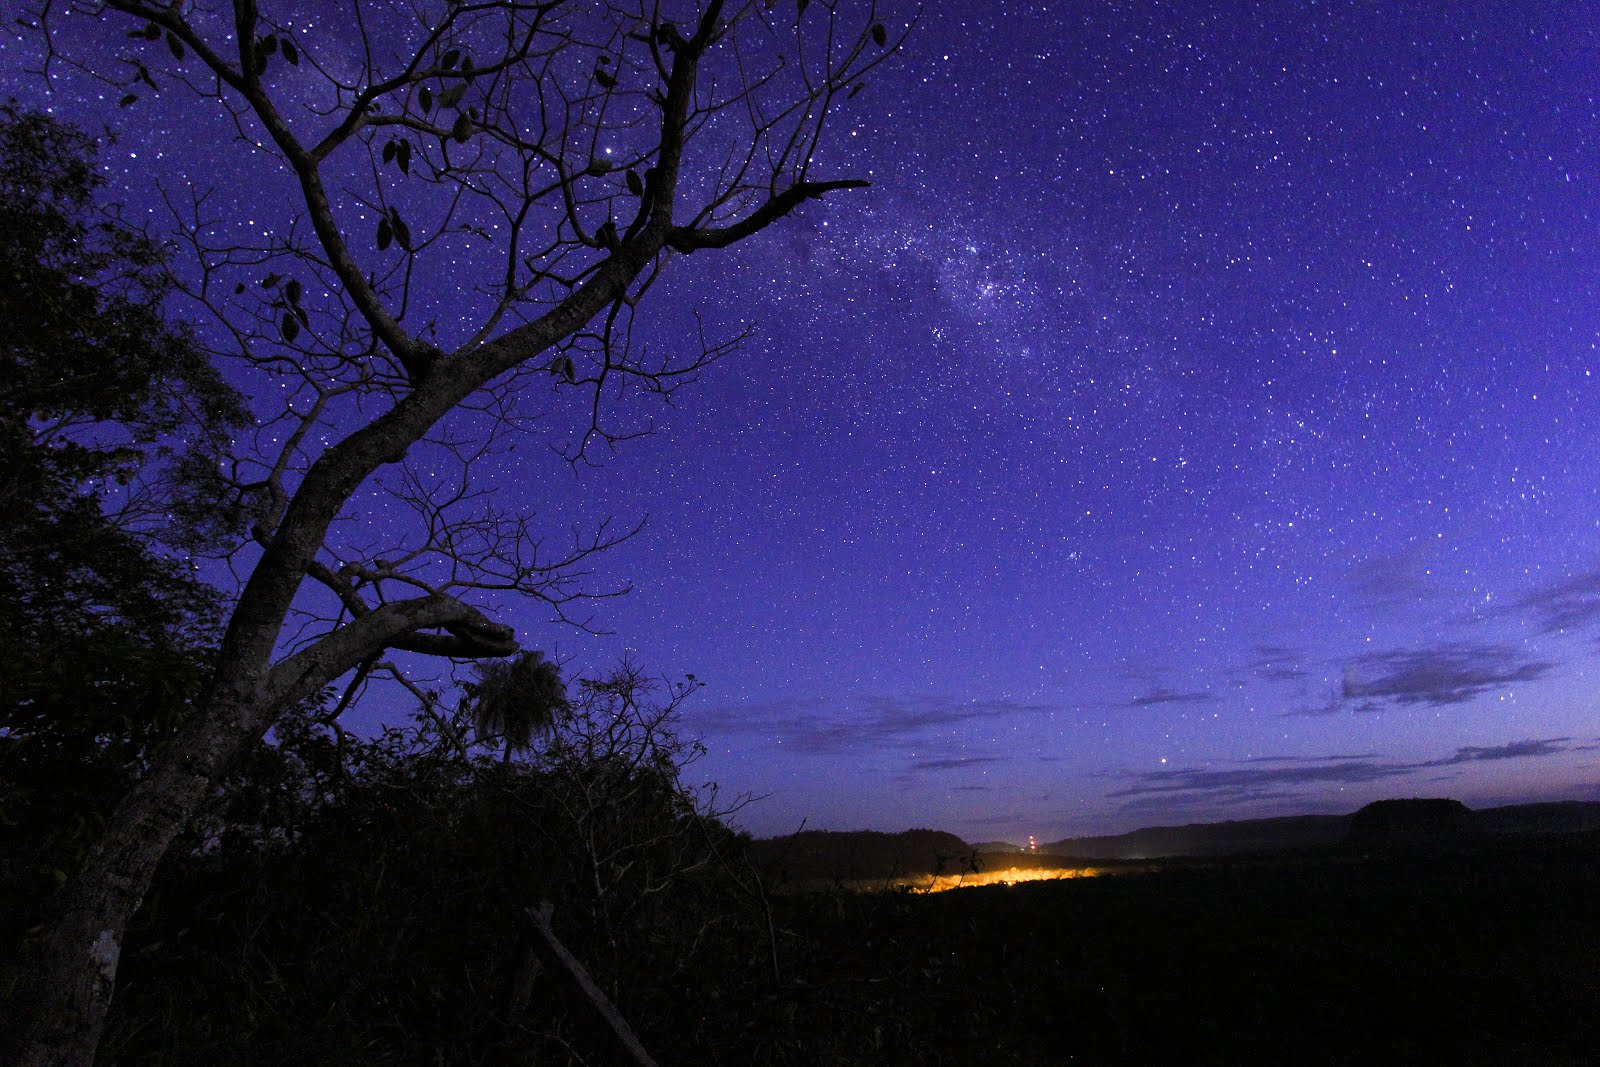 David Farina Milky way from Paraguay Cerro Cora